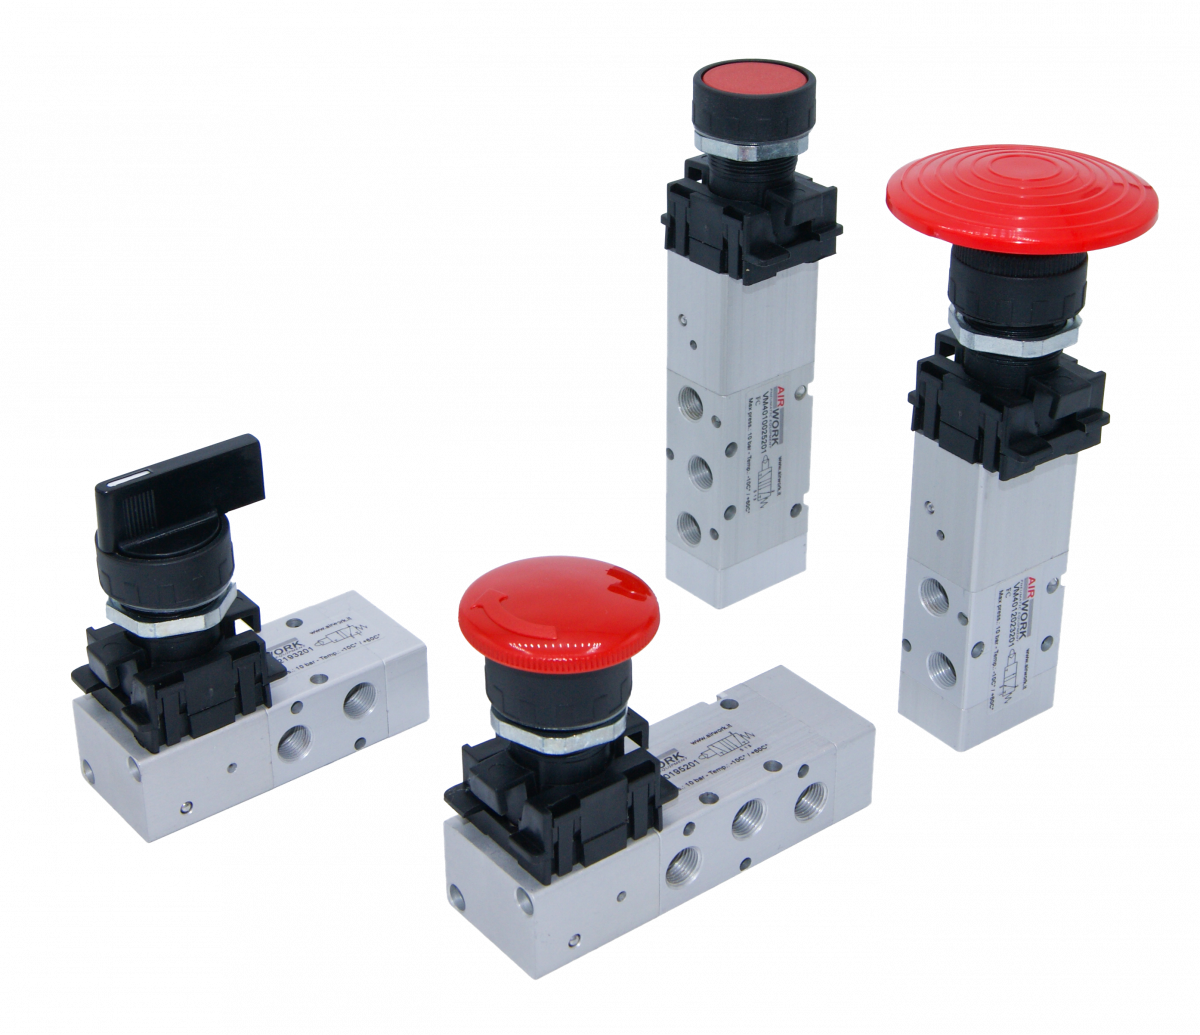 manual valves with integrated adaptor and interface